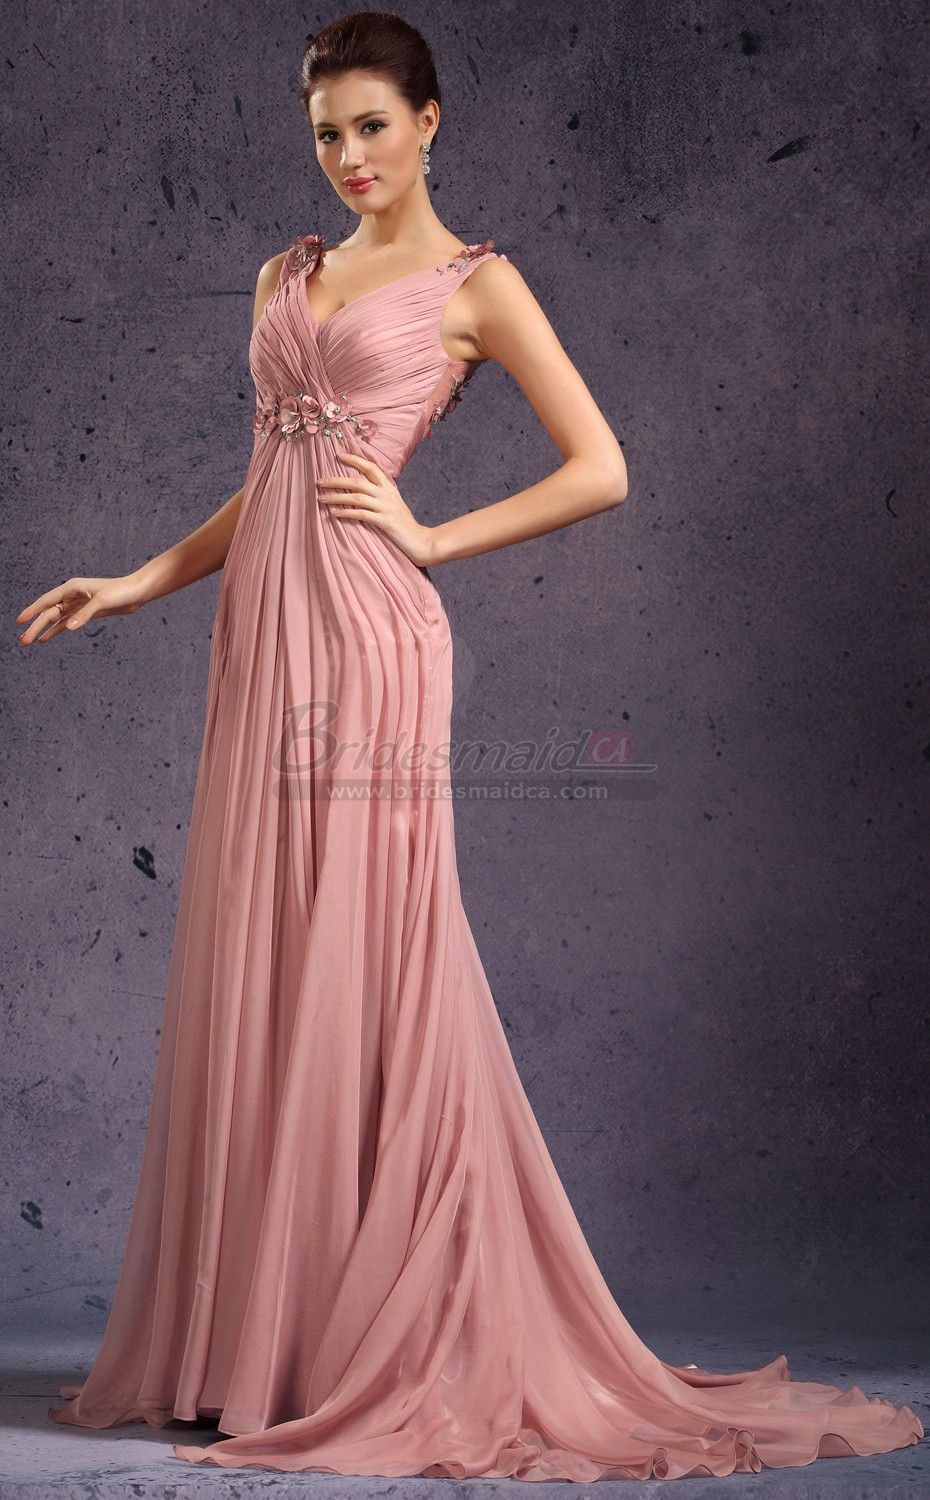 V Neck Chiffon Nude Pink Long Sheath Empire Waist Bridesmaid Dress ...